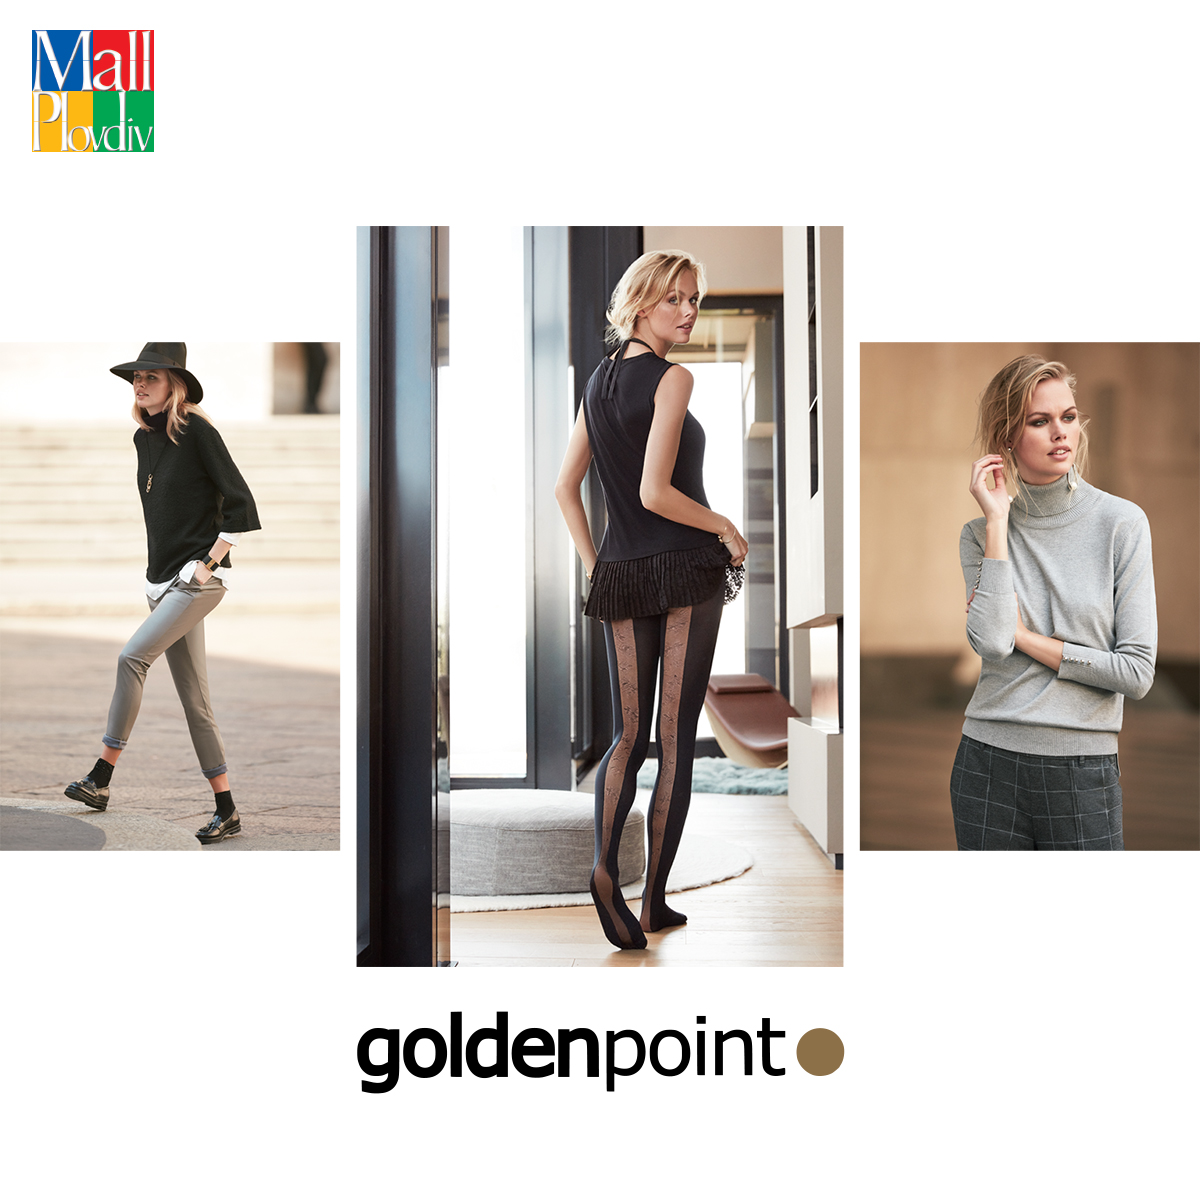 Be irresistible with Golden Point